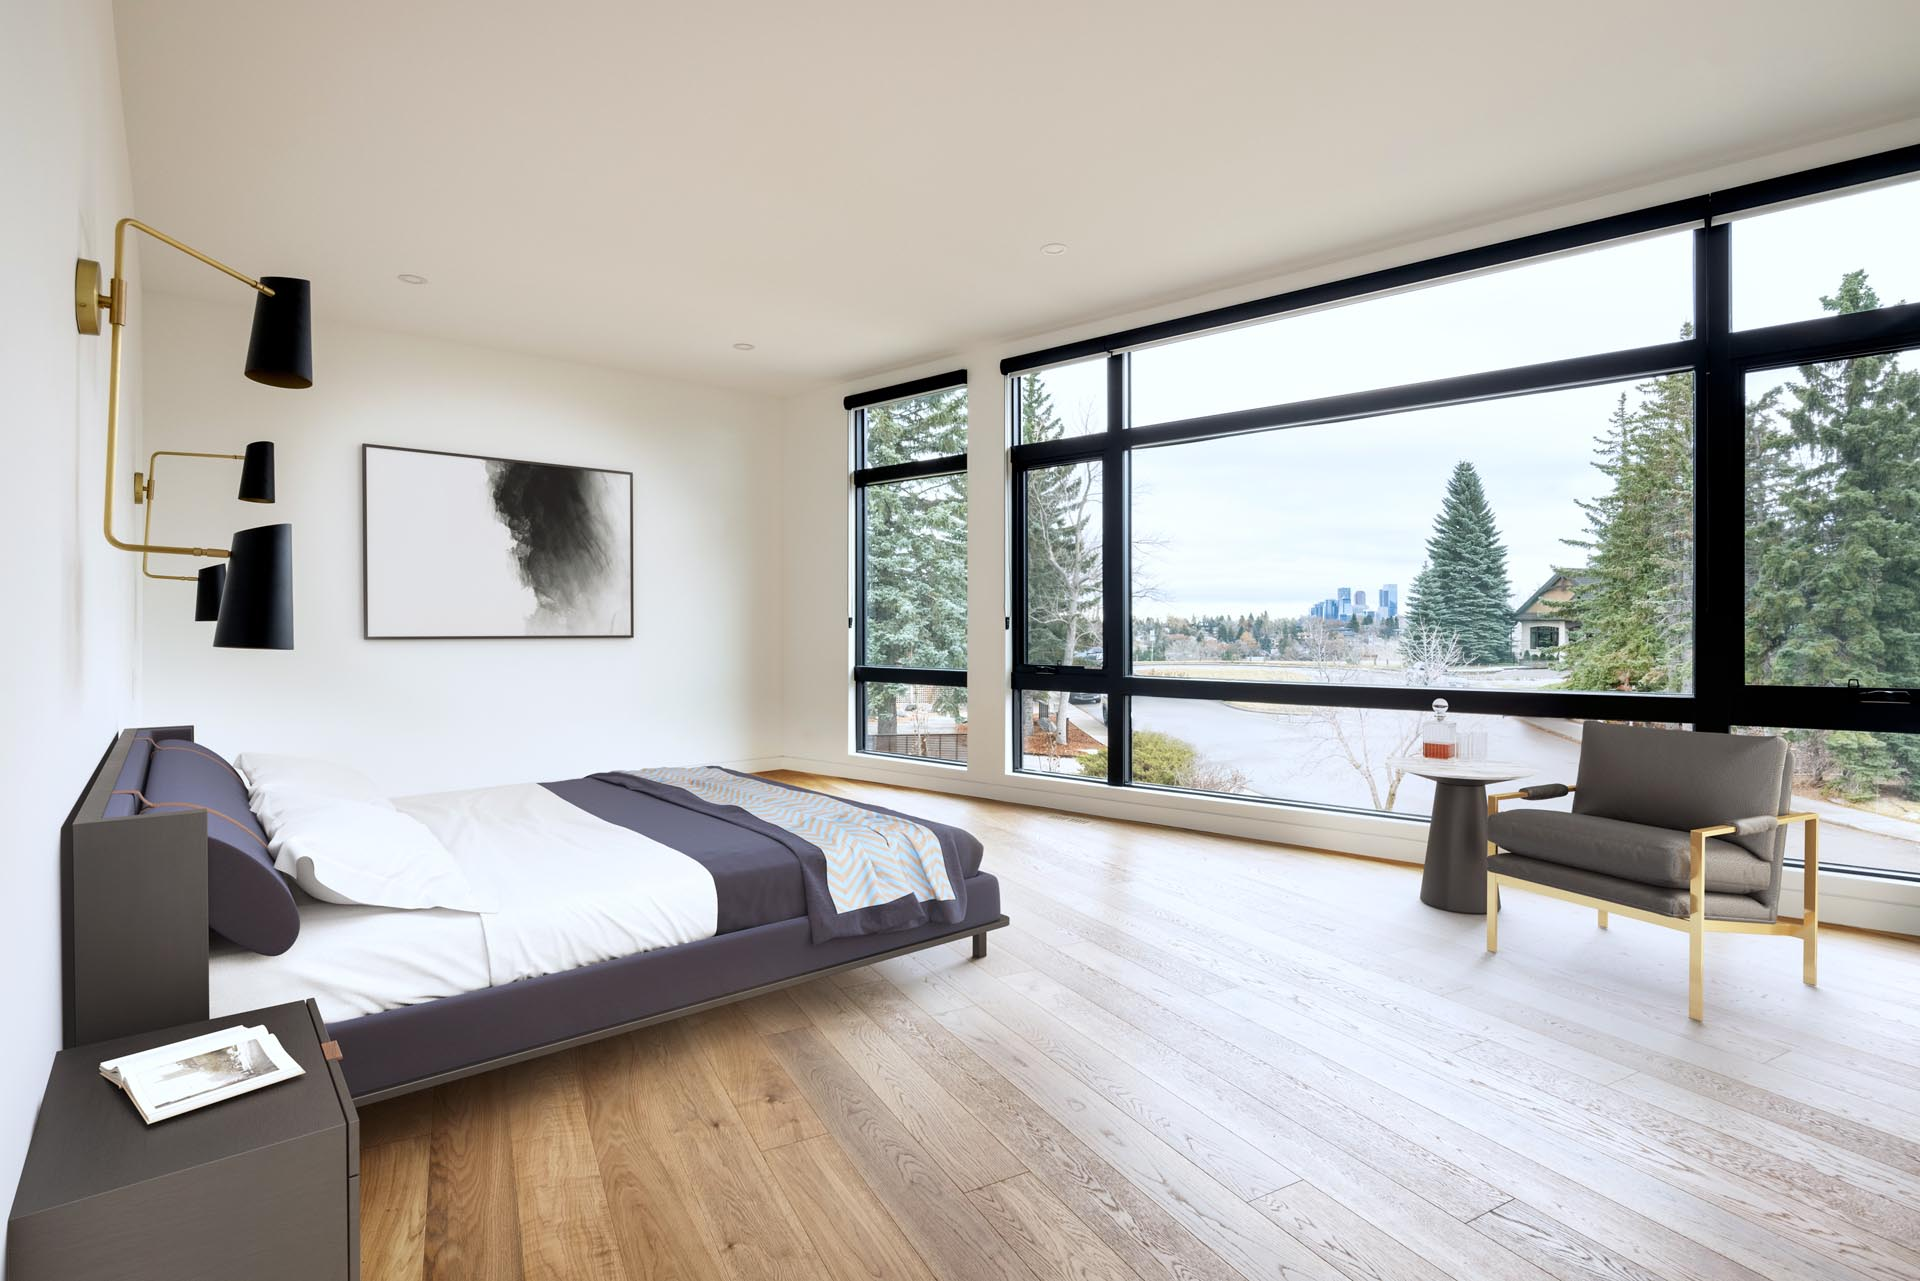 In this primary bedroom, bronze and black lighting has been mounted to the wall on either side of the bed, while the windows provide views of the neighborhood.